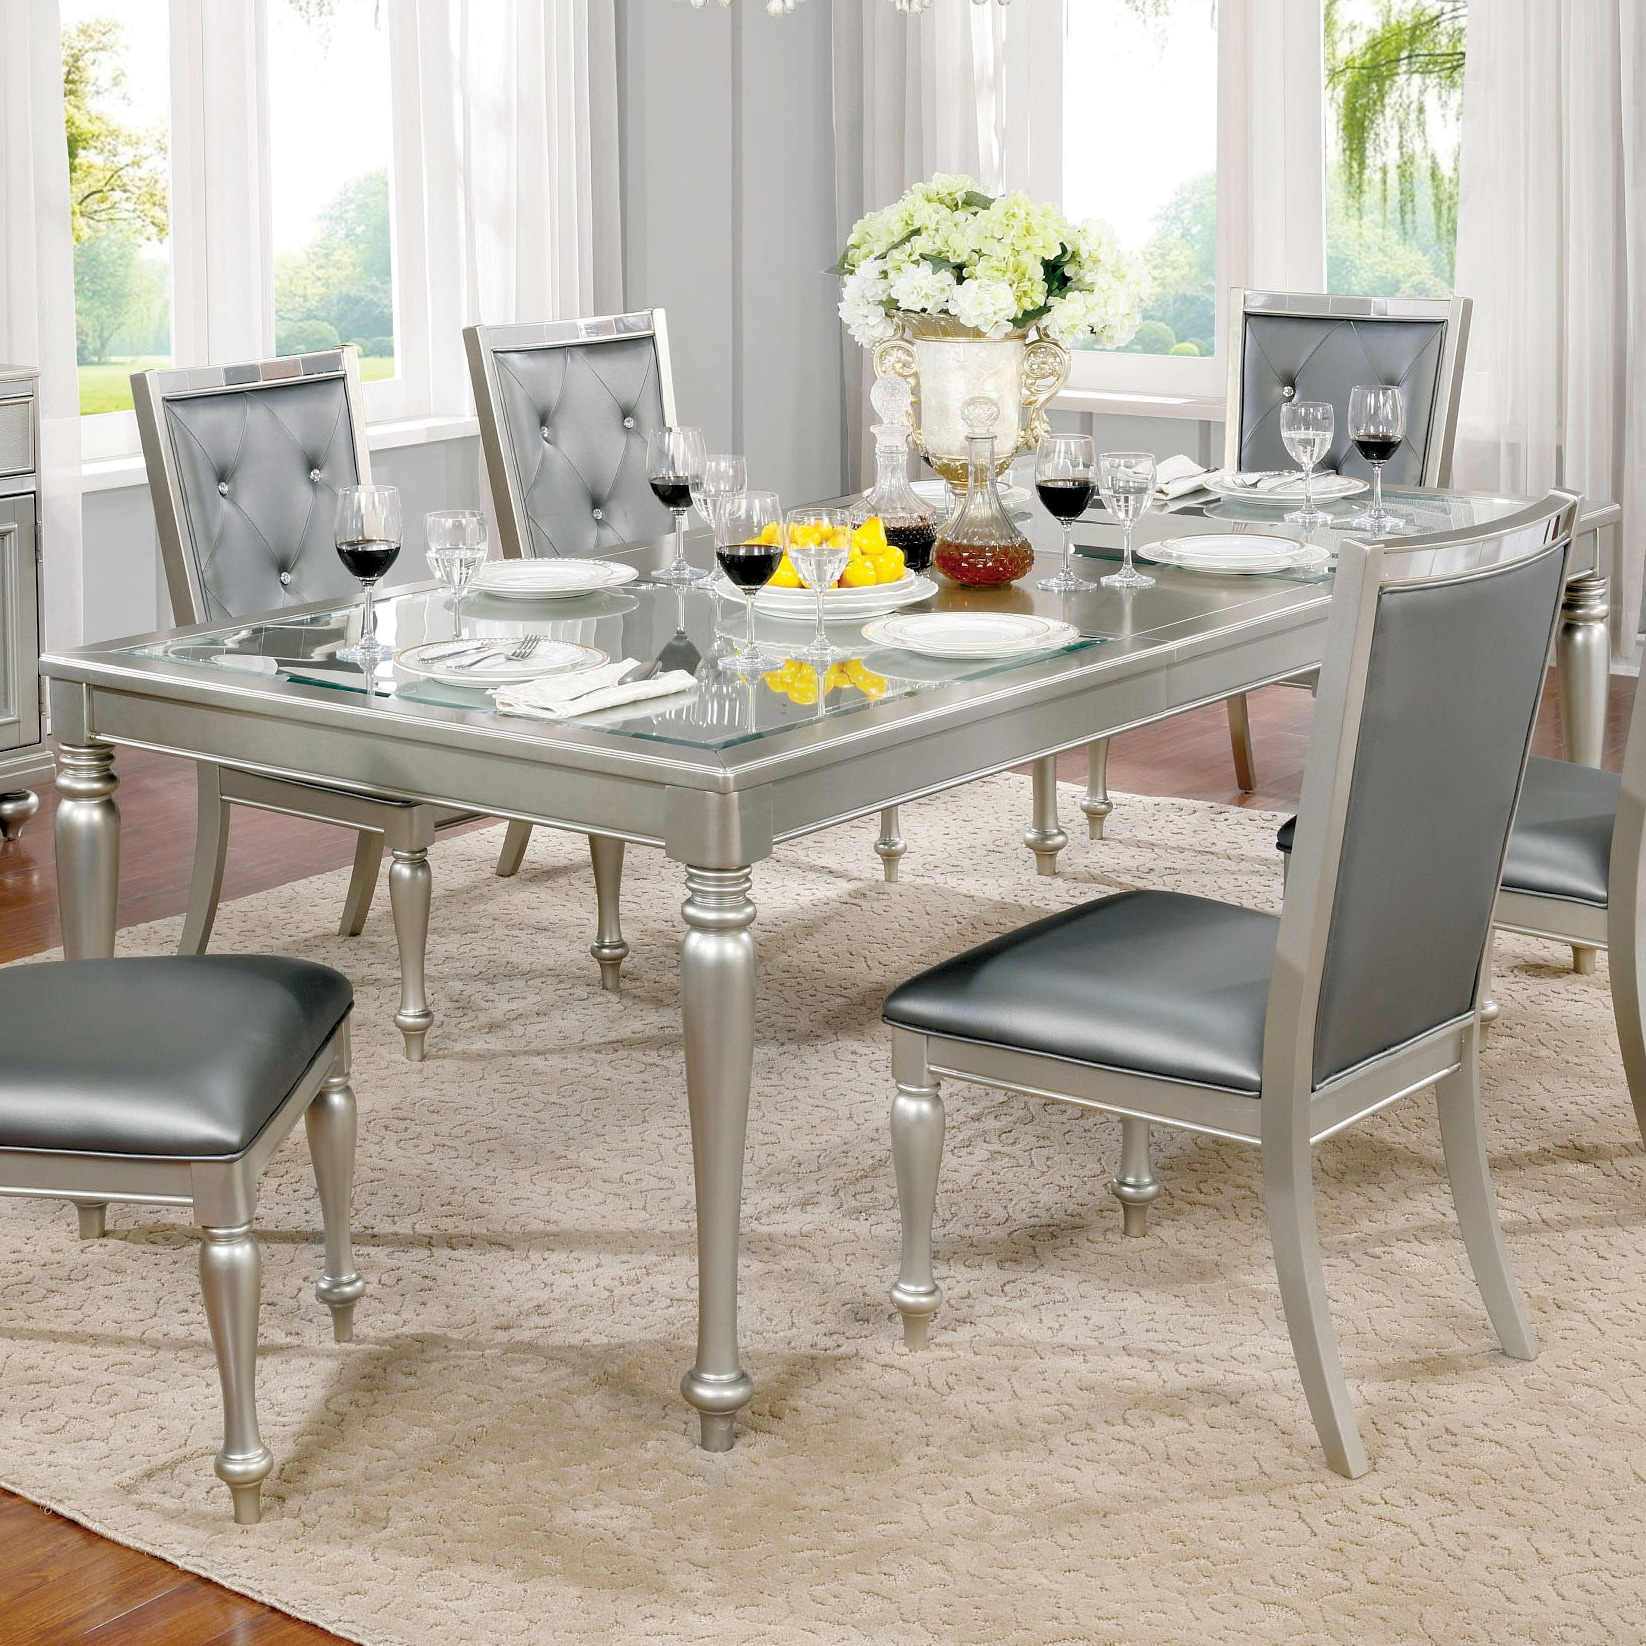 Shop furniture of america glendel glam embossed glass top silver grey dining table with 18 inch leaf on sale free shipping today overstock com